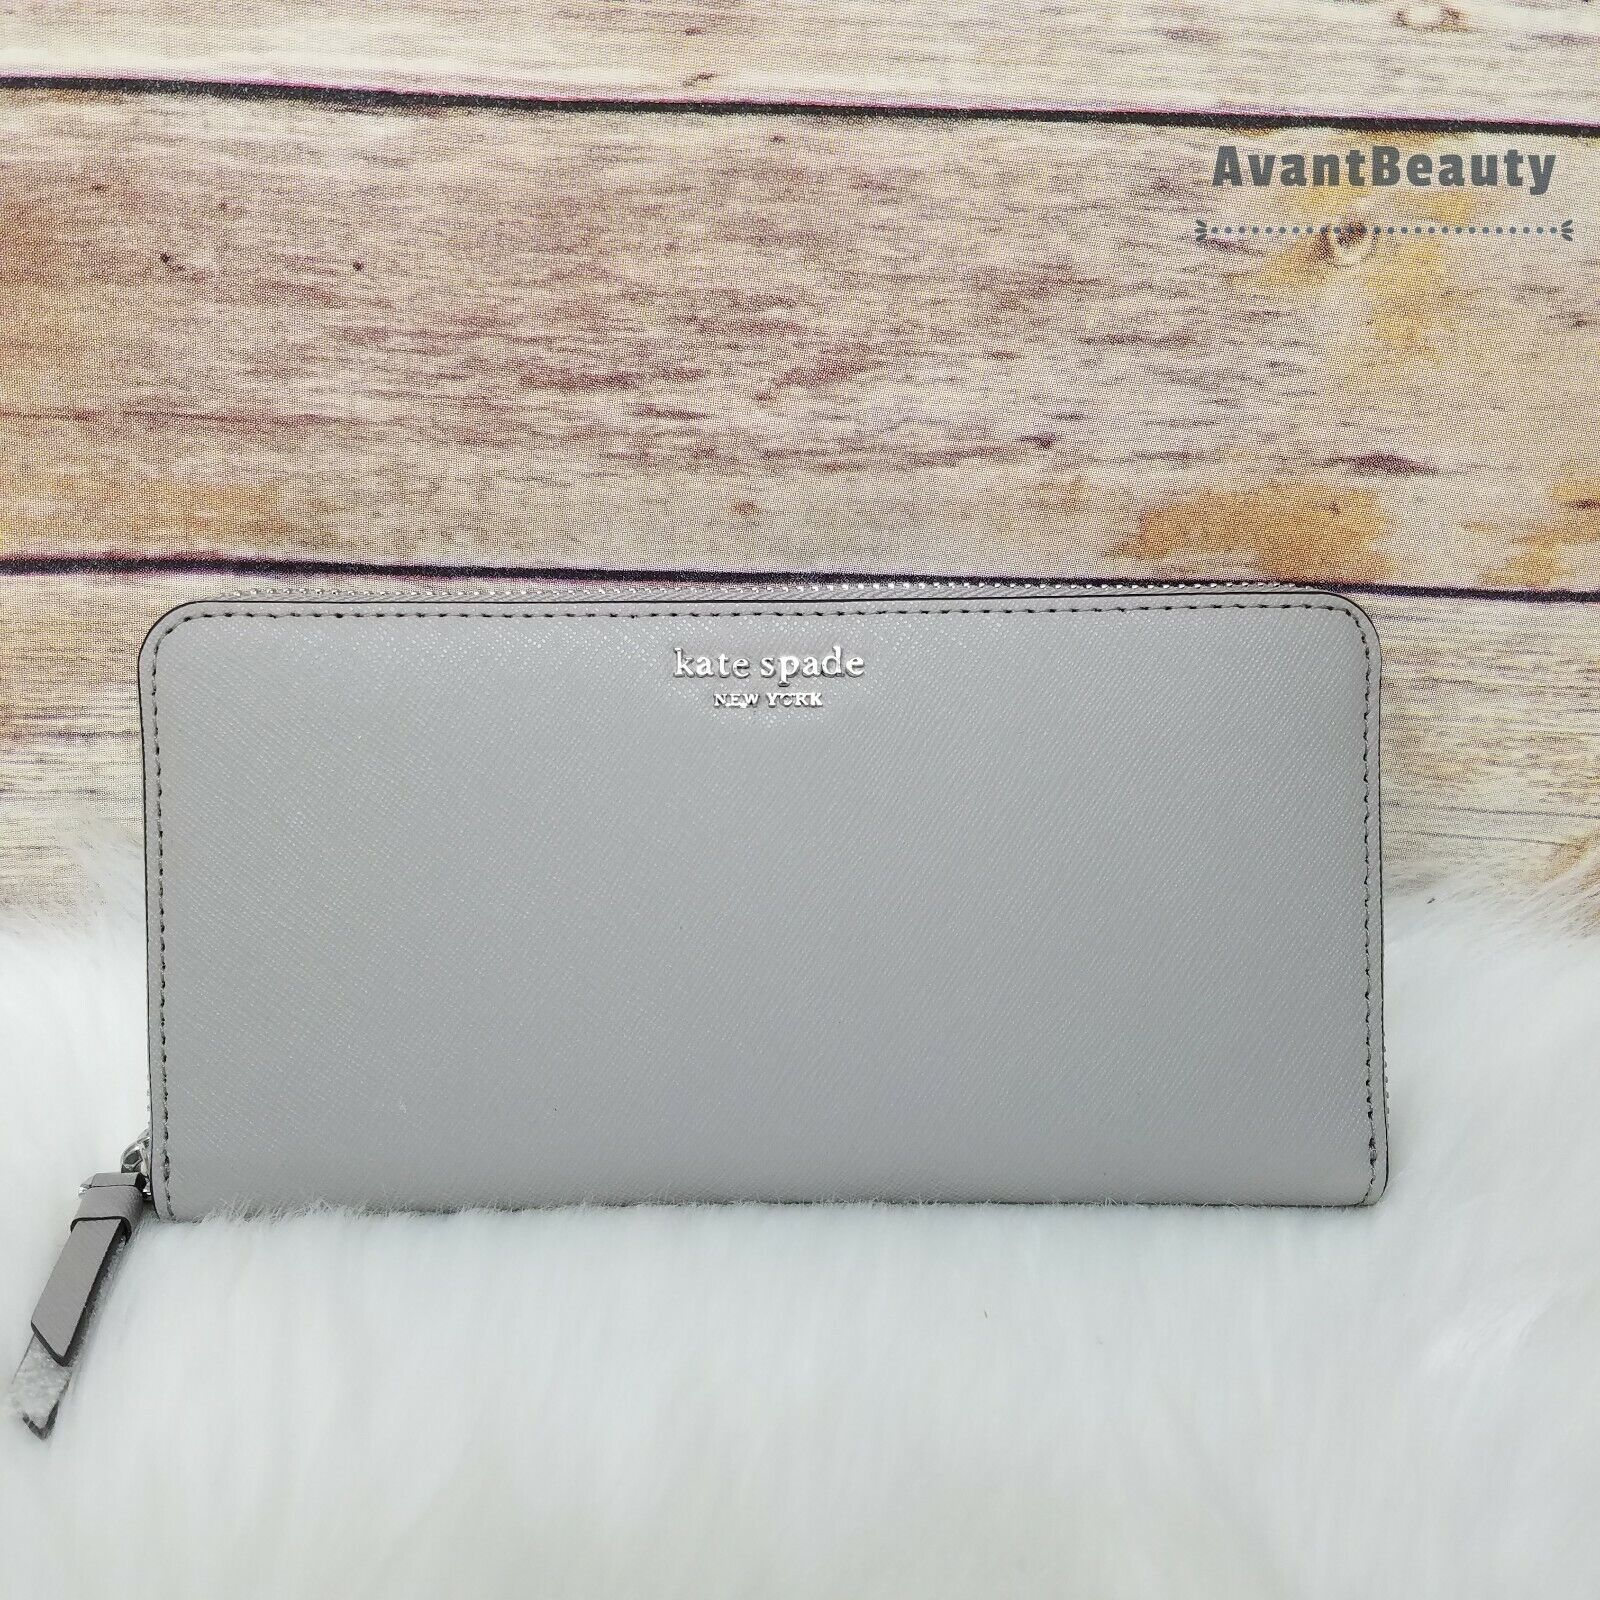 NWT Kate Spade Cameron Large Continental Leather Wallet in Soft Taupe Leather